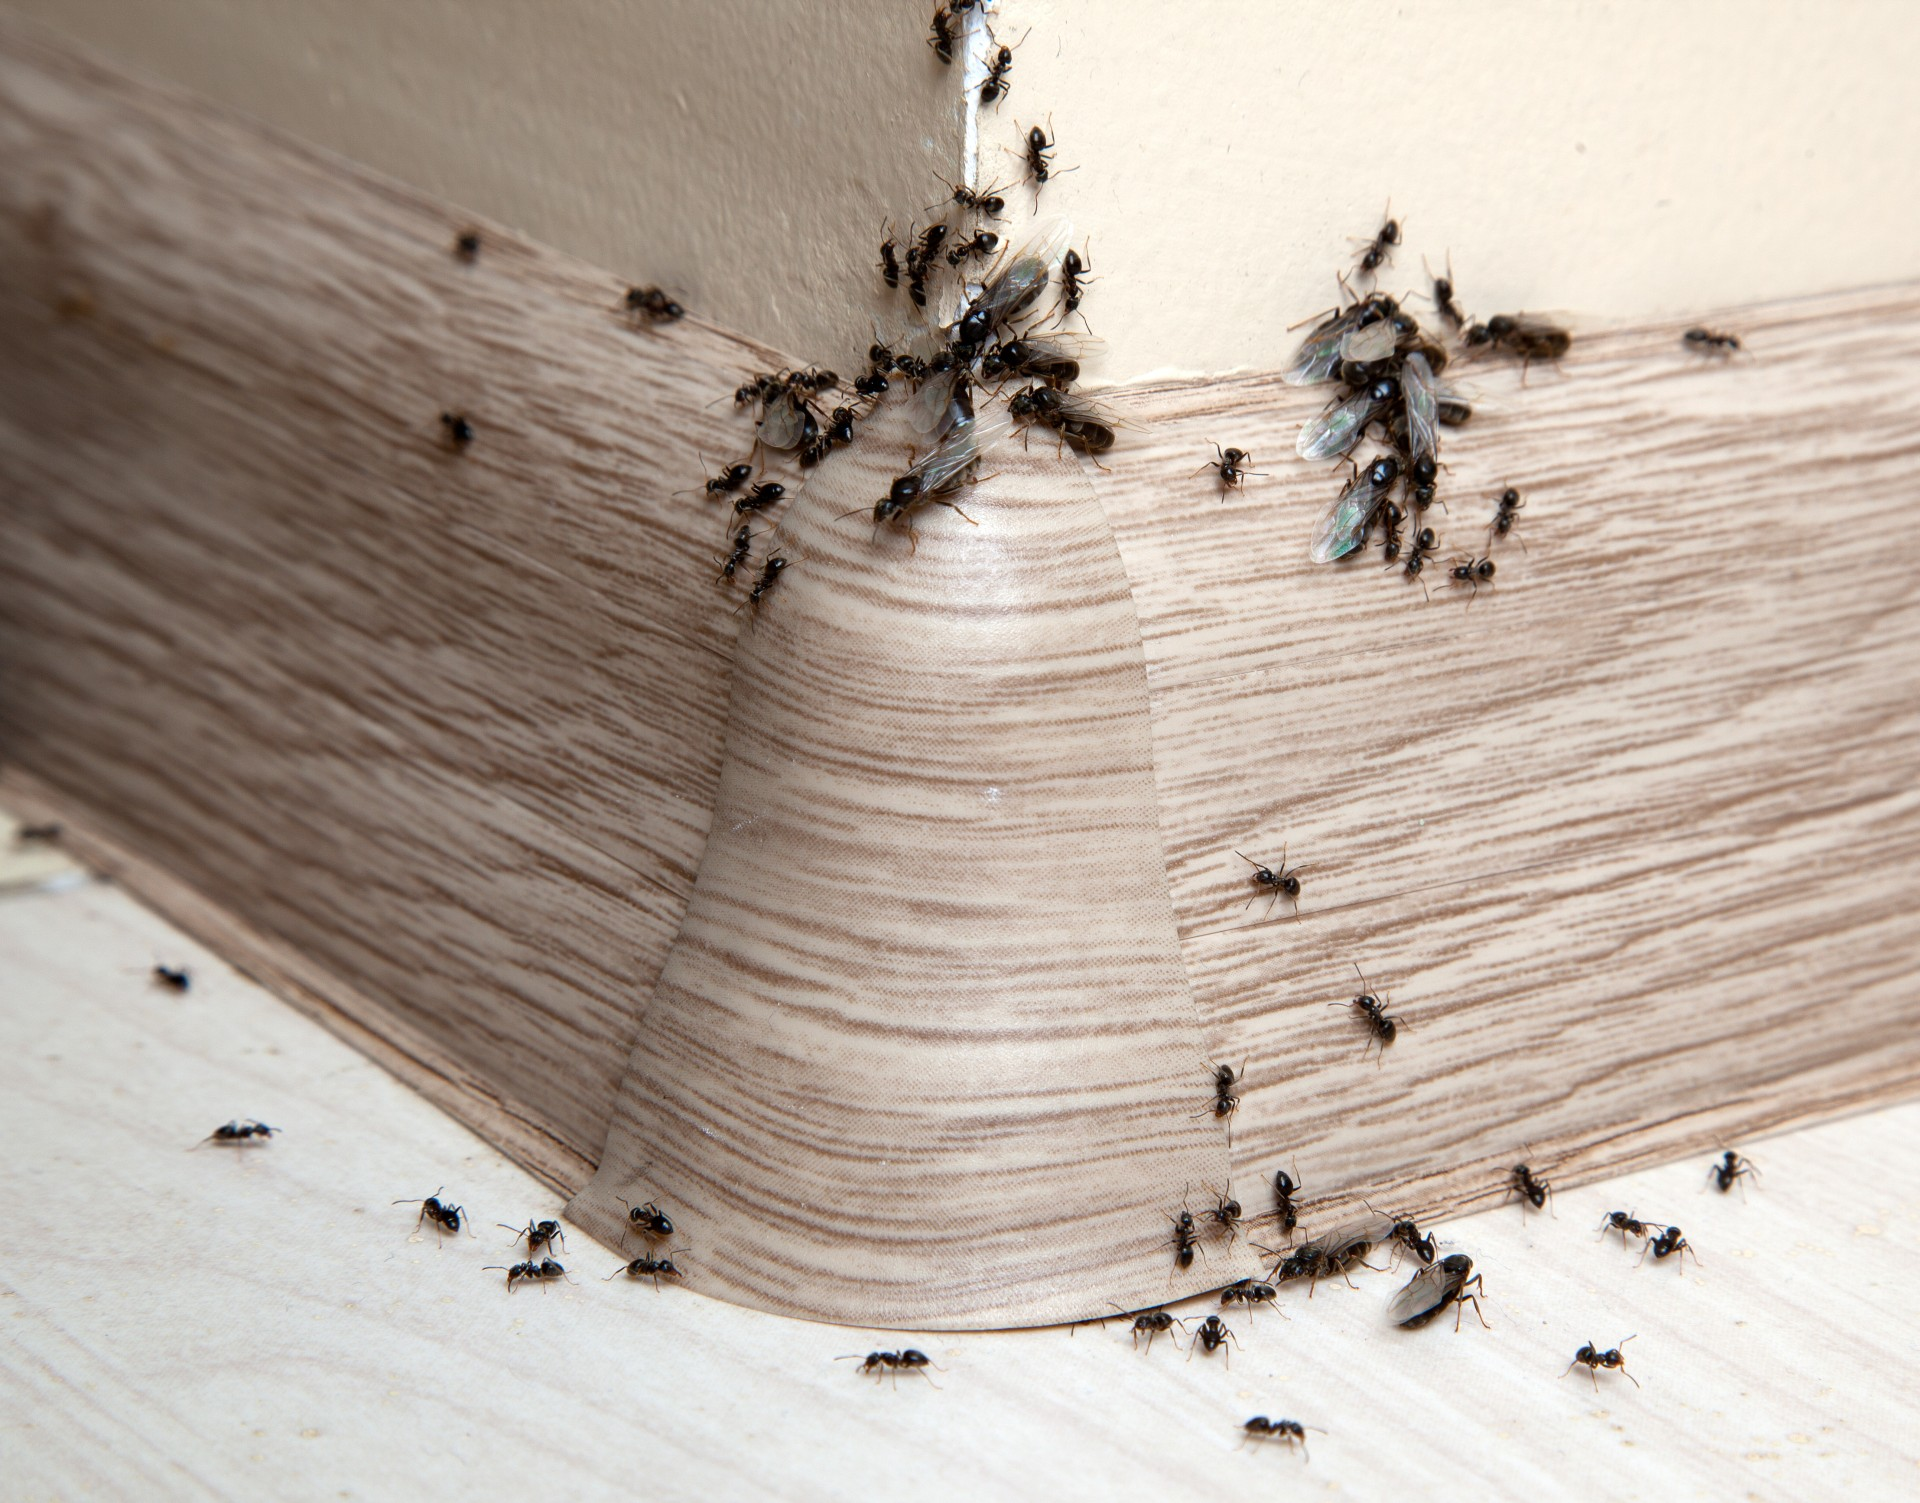 Ant Infestation, Pest Control in Bromley-by-Bow, Bow, E3. Call Now 020 8166 9746